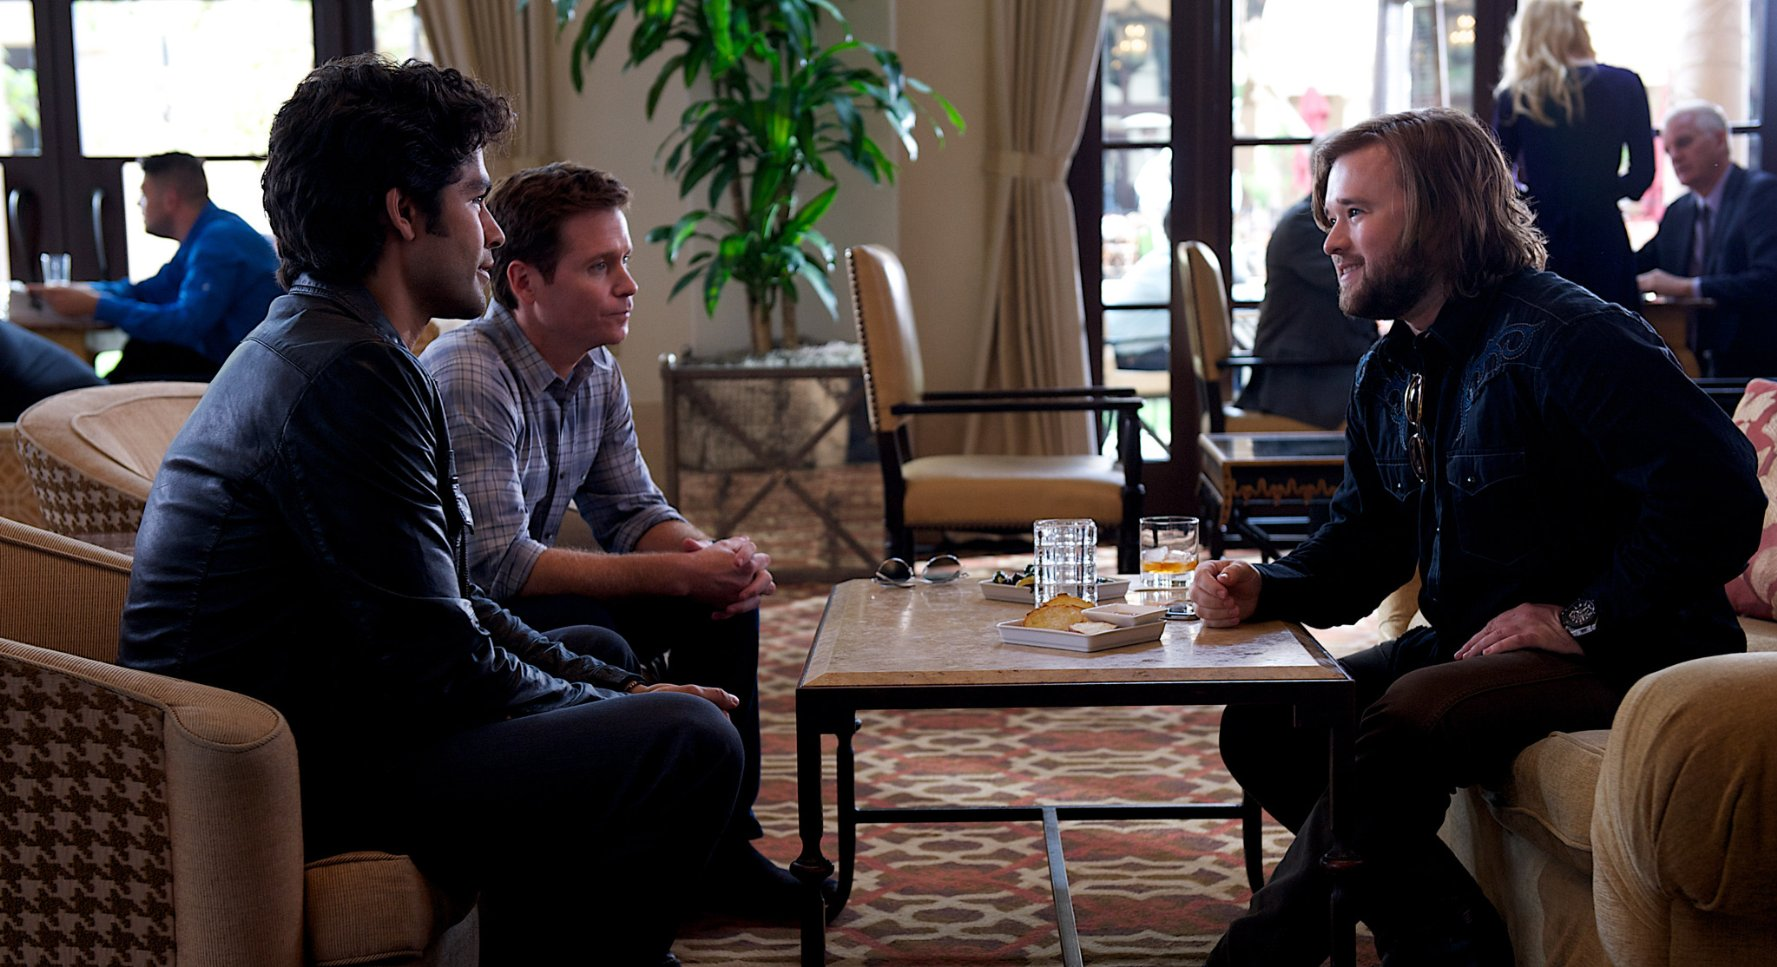 Adrian_Grenier_Haley_Joel_Osment_and_Kevin_Connolly